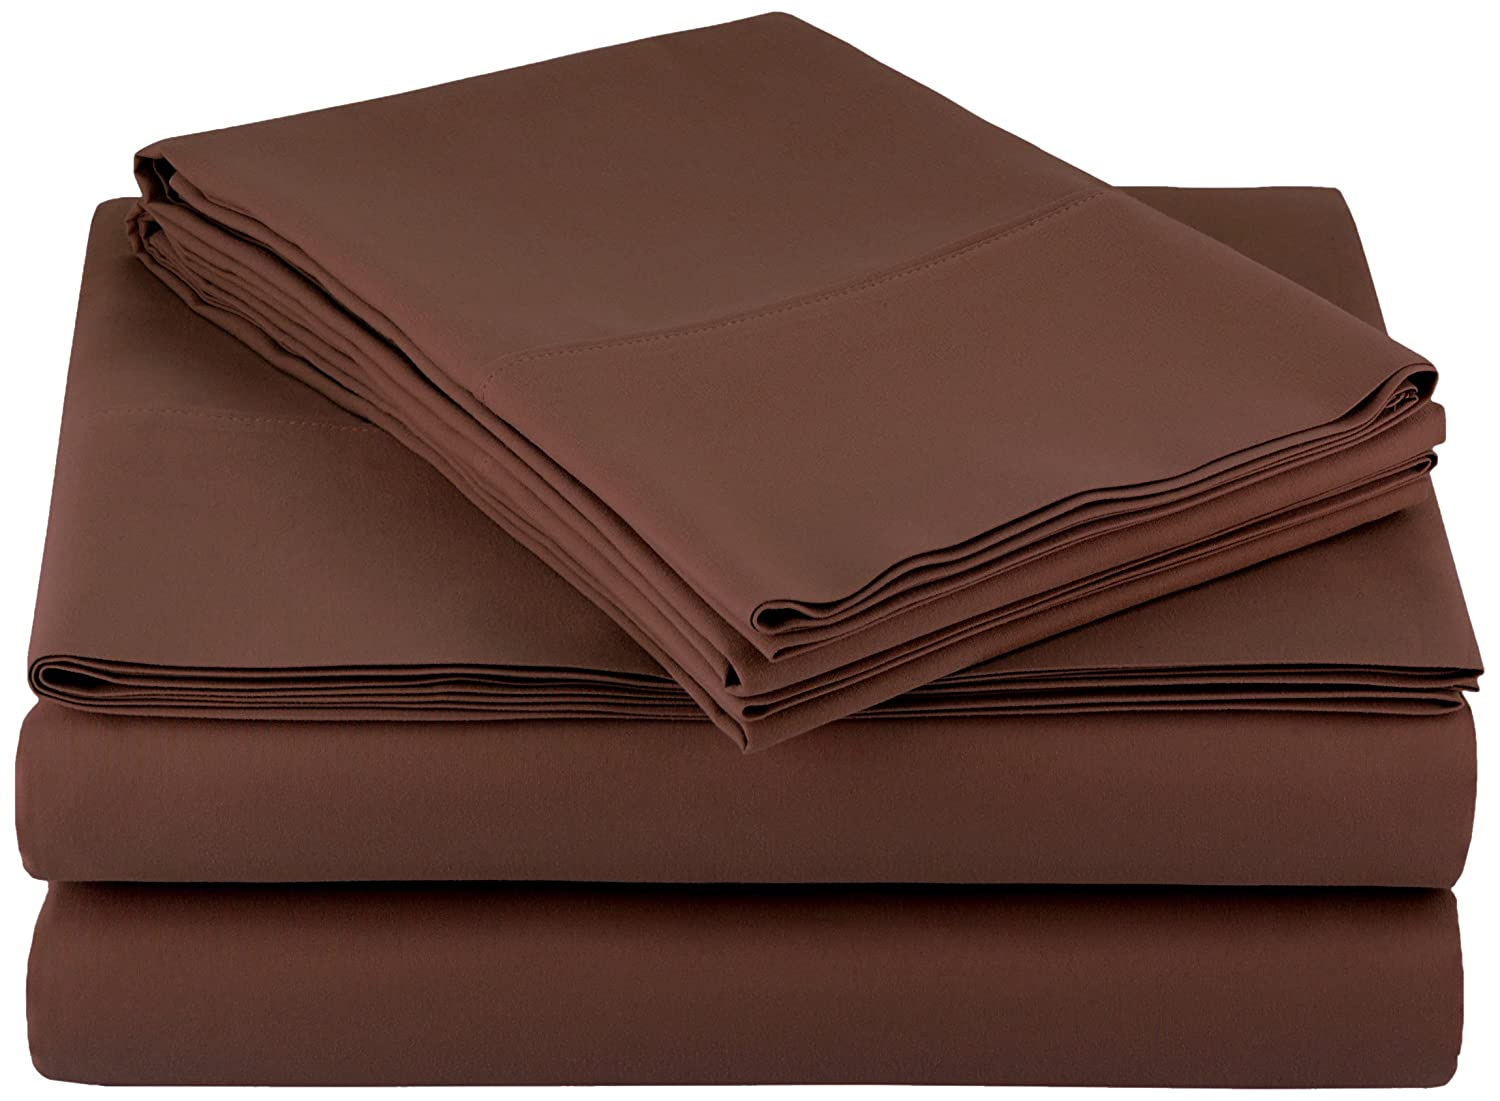 AmazonBasics Microfiber Sheet Set - Full, Chocolate